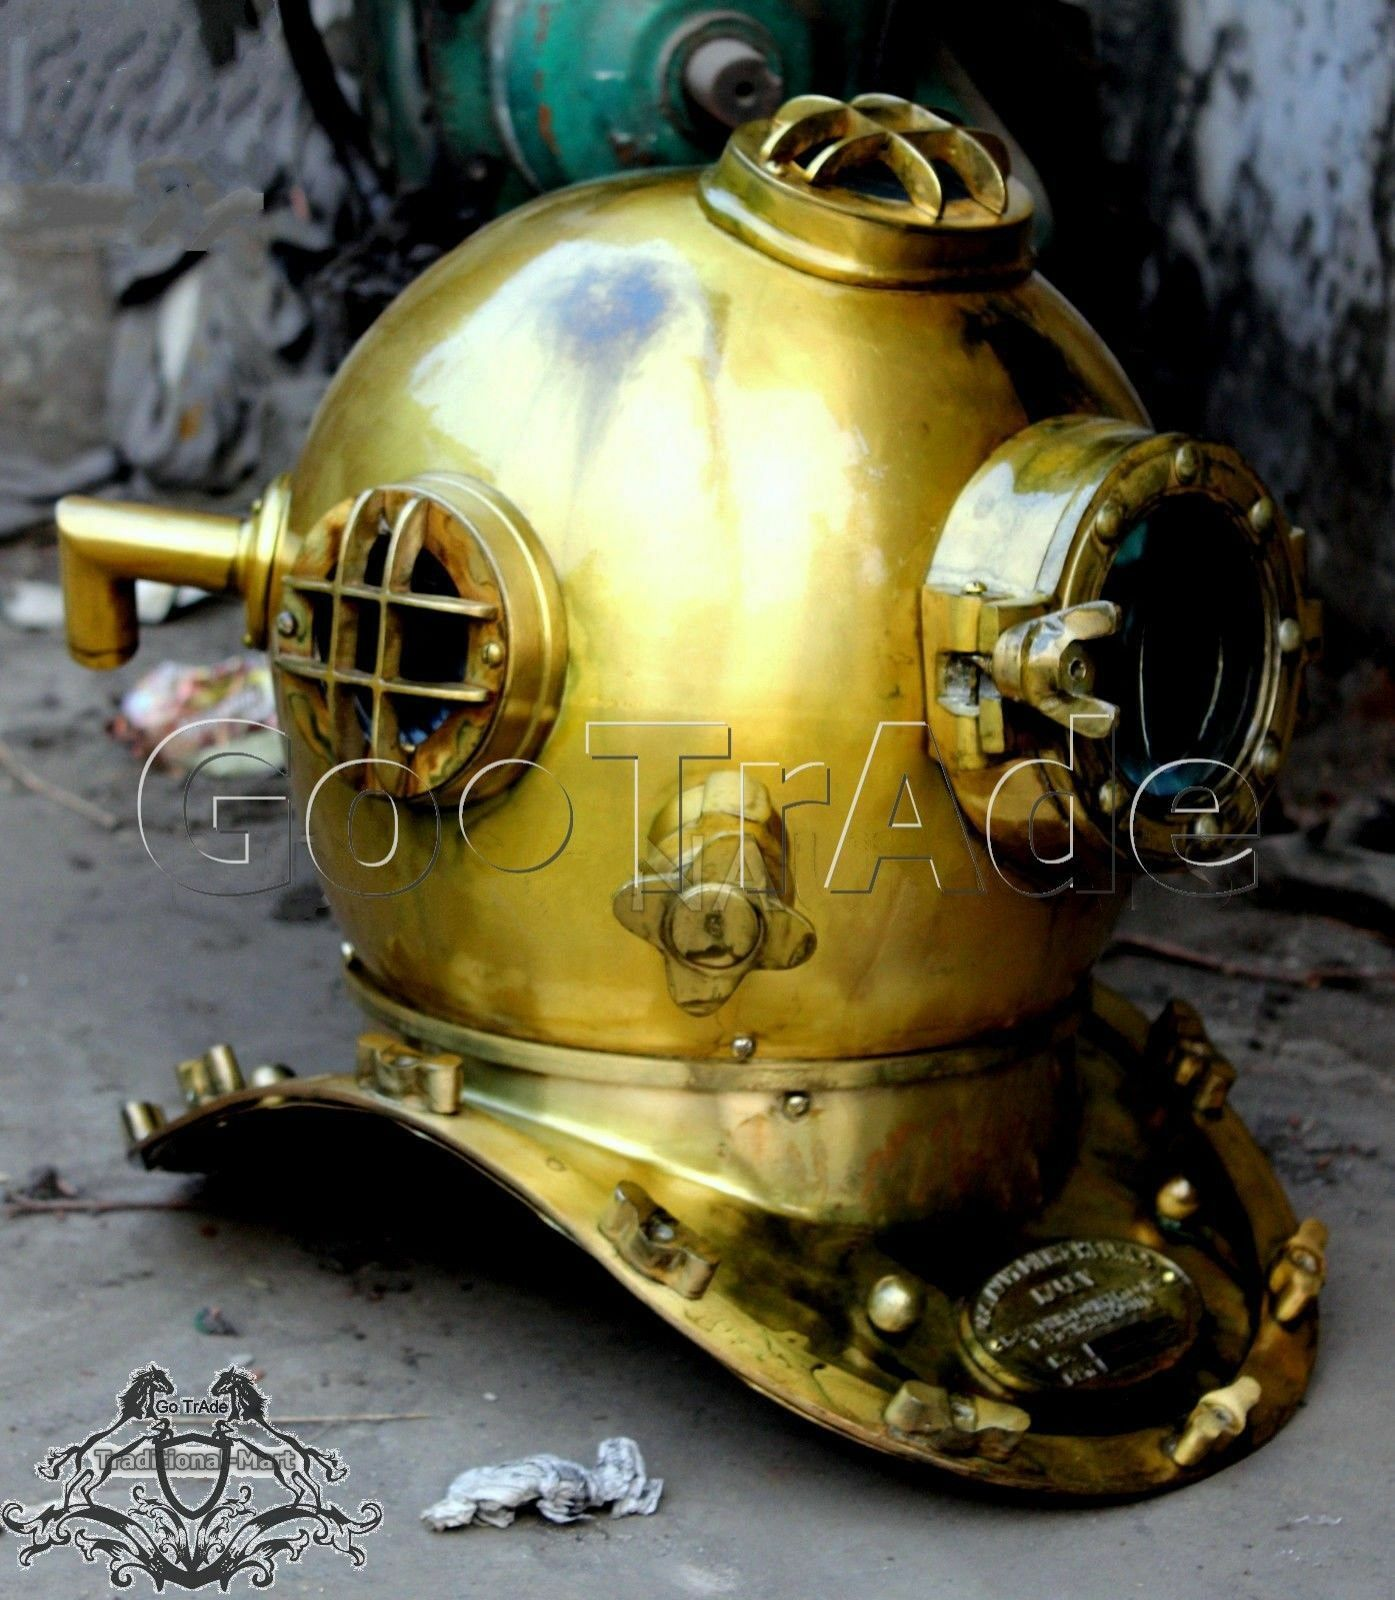 Antique GIFT US Navy Vintage Dive Helmet Mark V Antique Diving Divers Helmet